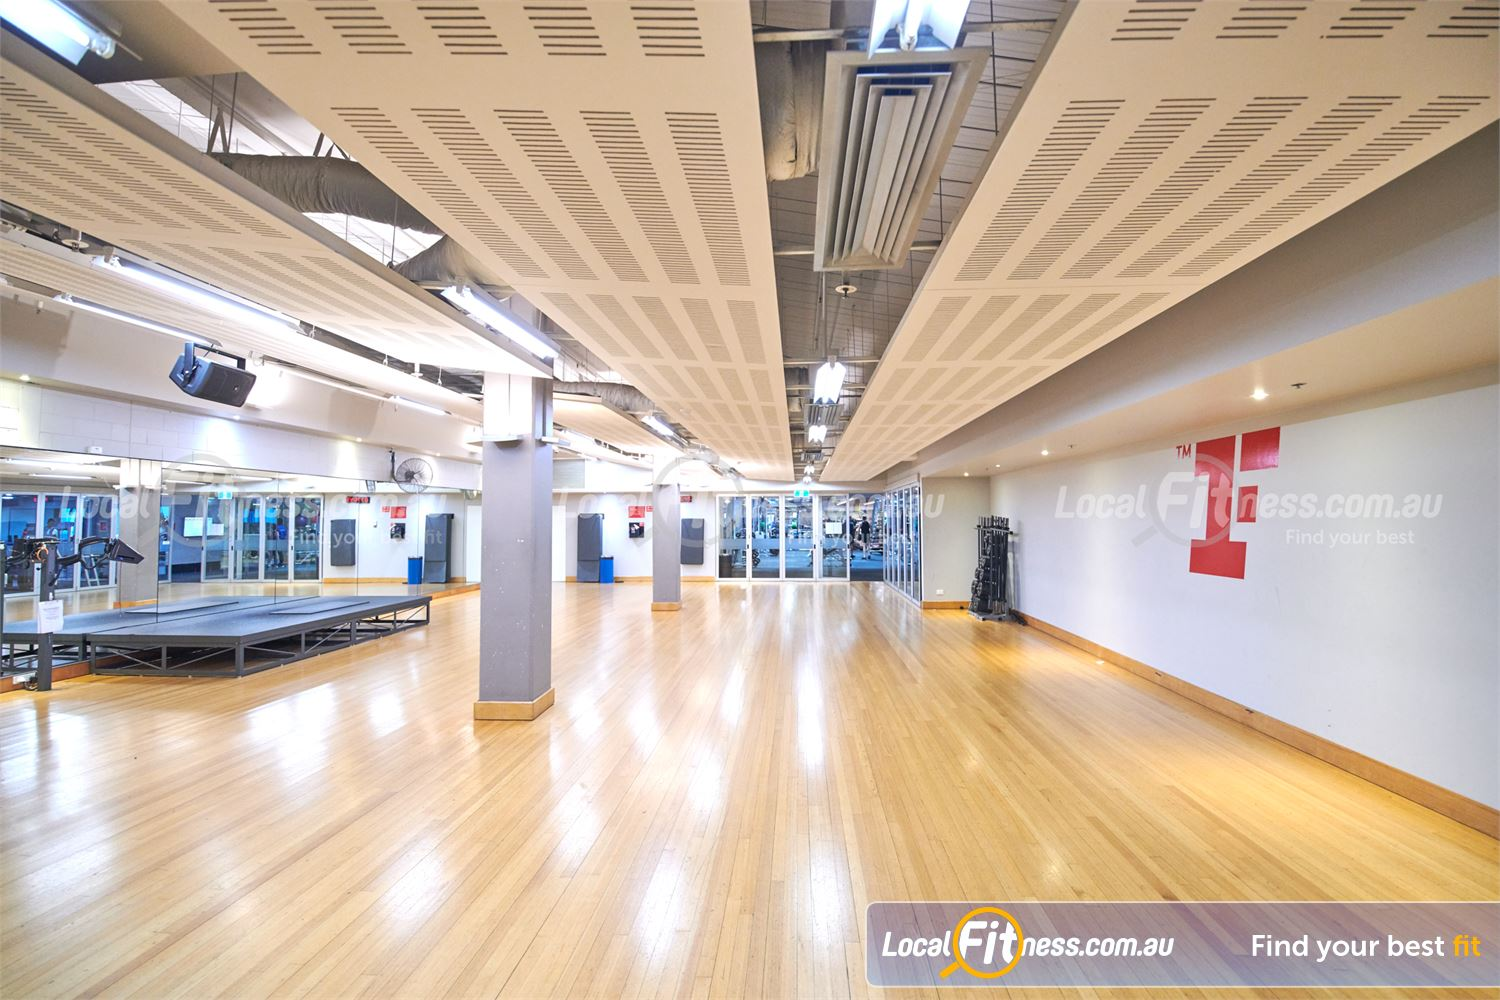 Fitness First Victoria Gardens Near South Yarra Popular Richmond Yoga and Pilates classes.